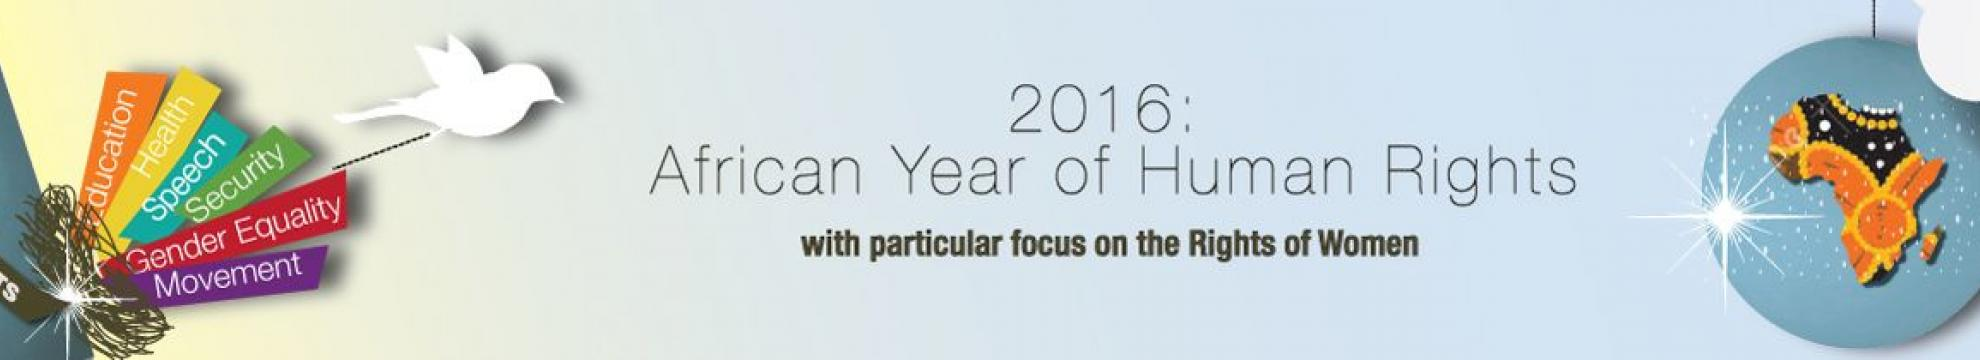 2016: African Year of Human Rights with particular focus on the Rights of Women